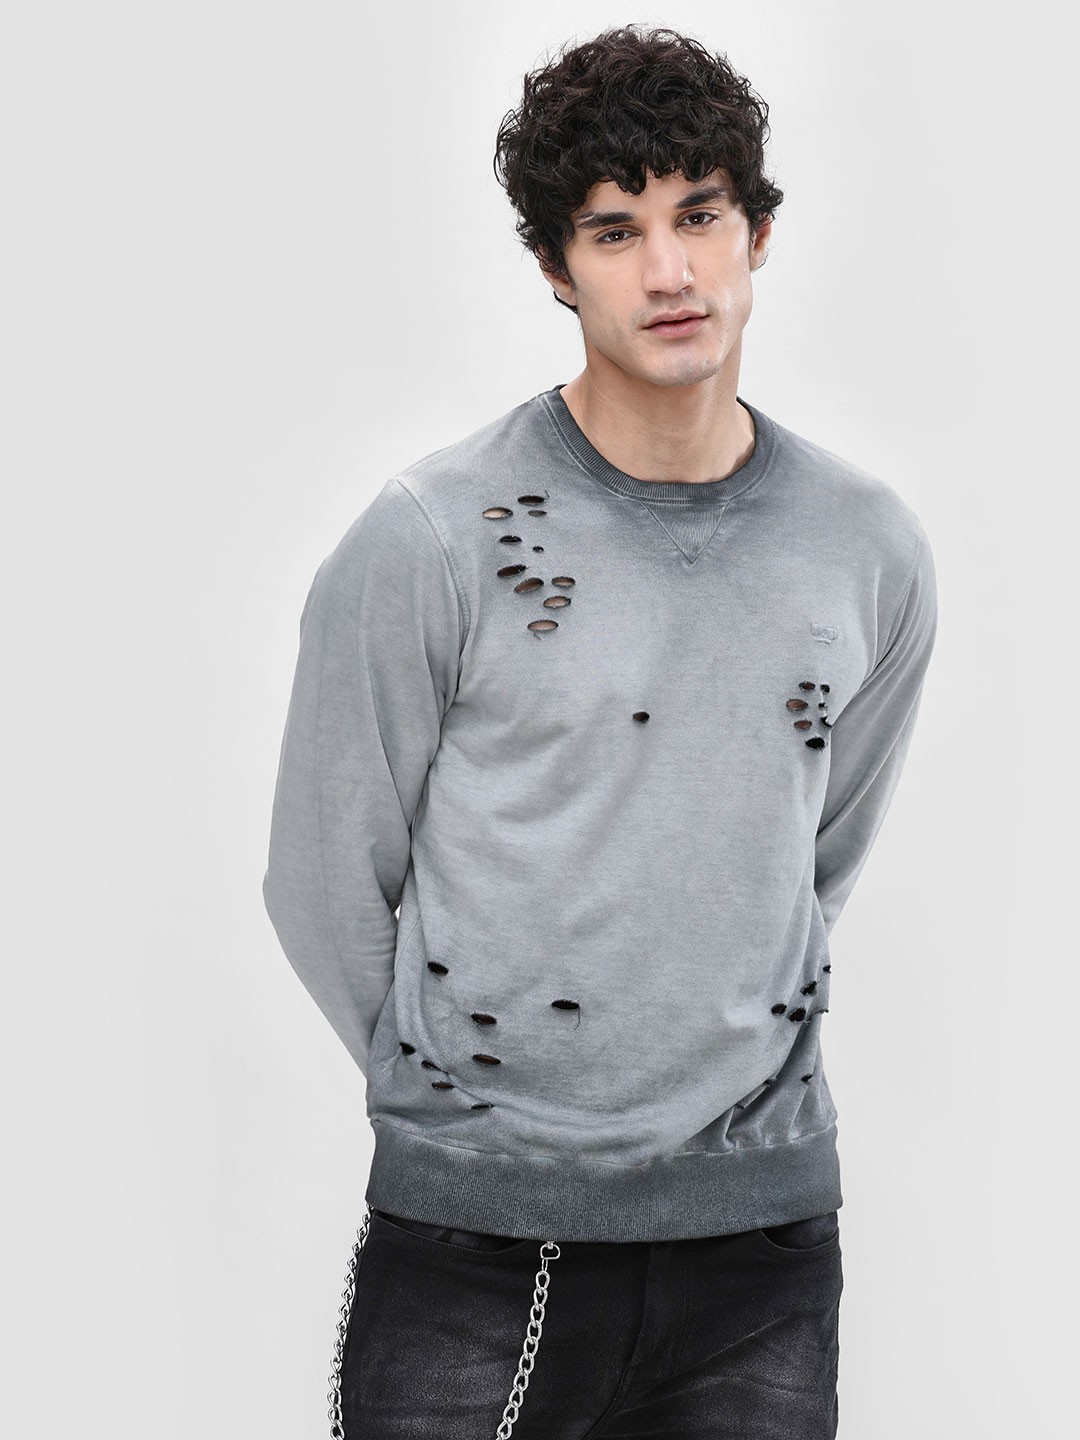 Garcon Grey Crew Neck Distressed Sweatshirt 1